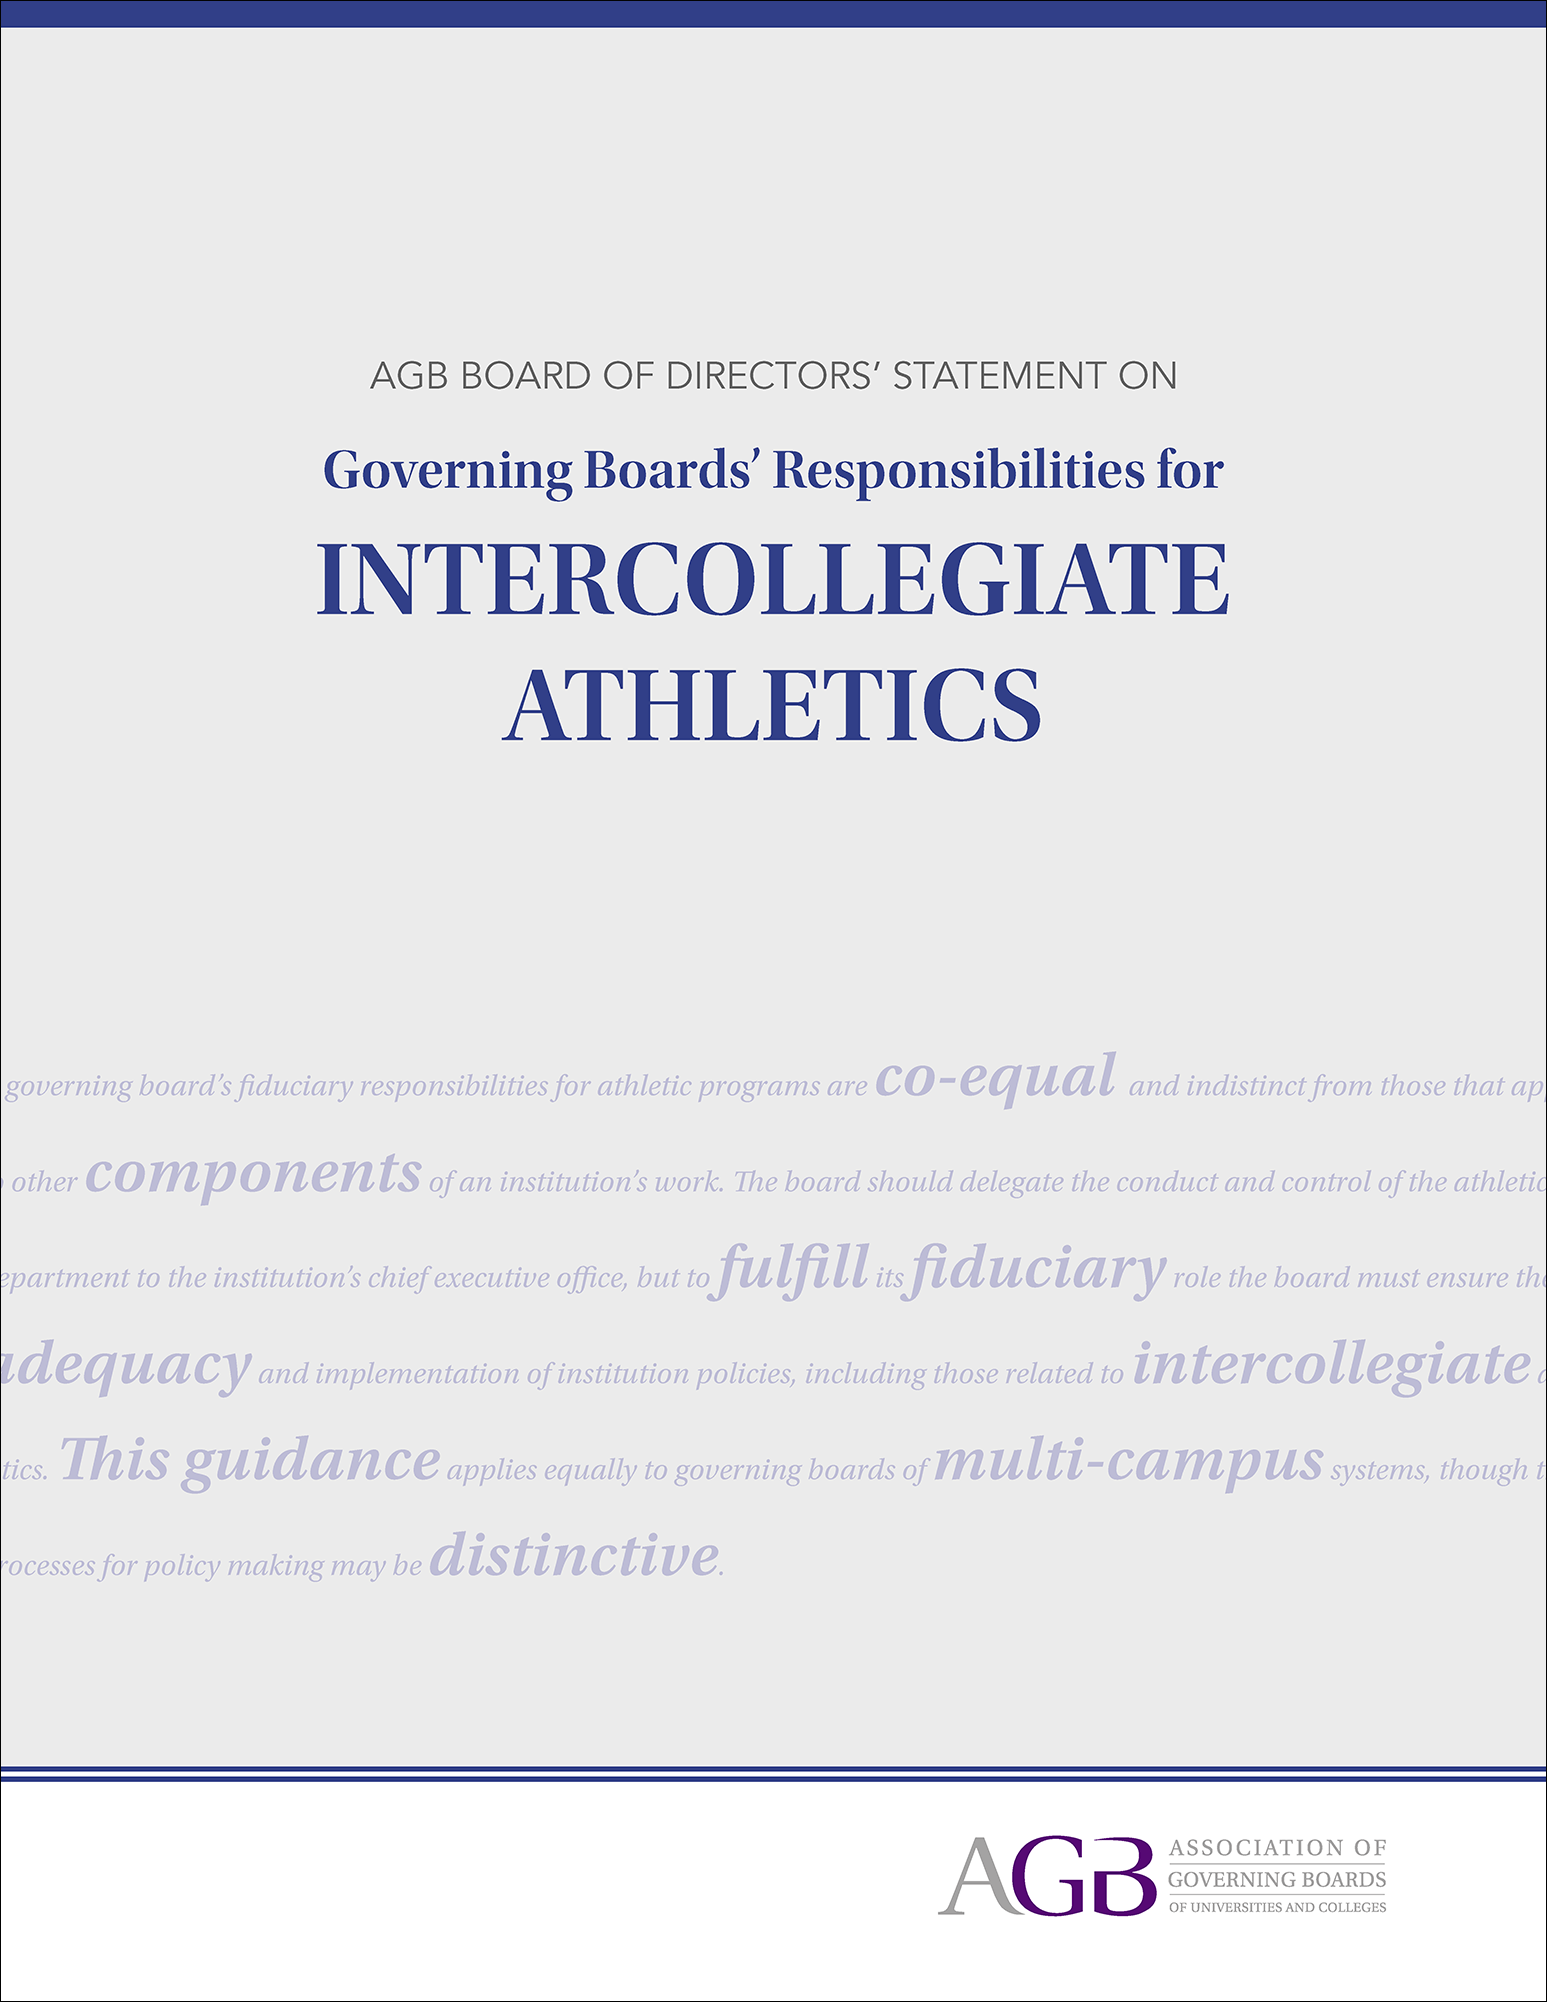 AGB Board of Directors' Statement on Governing Boards' Responsibilities for Intercollegiate Athletics